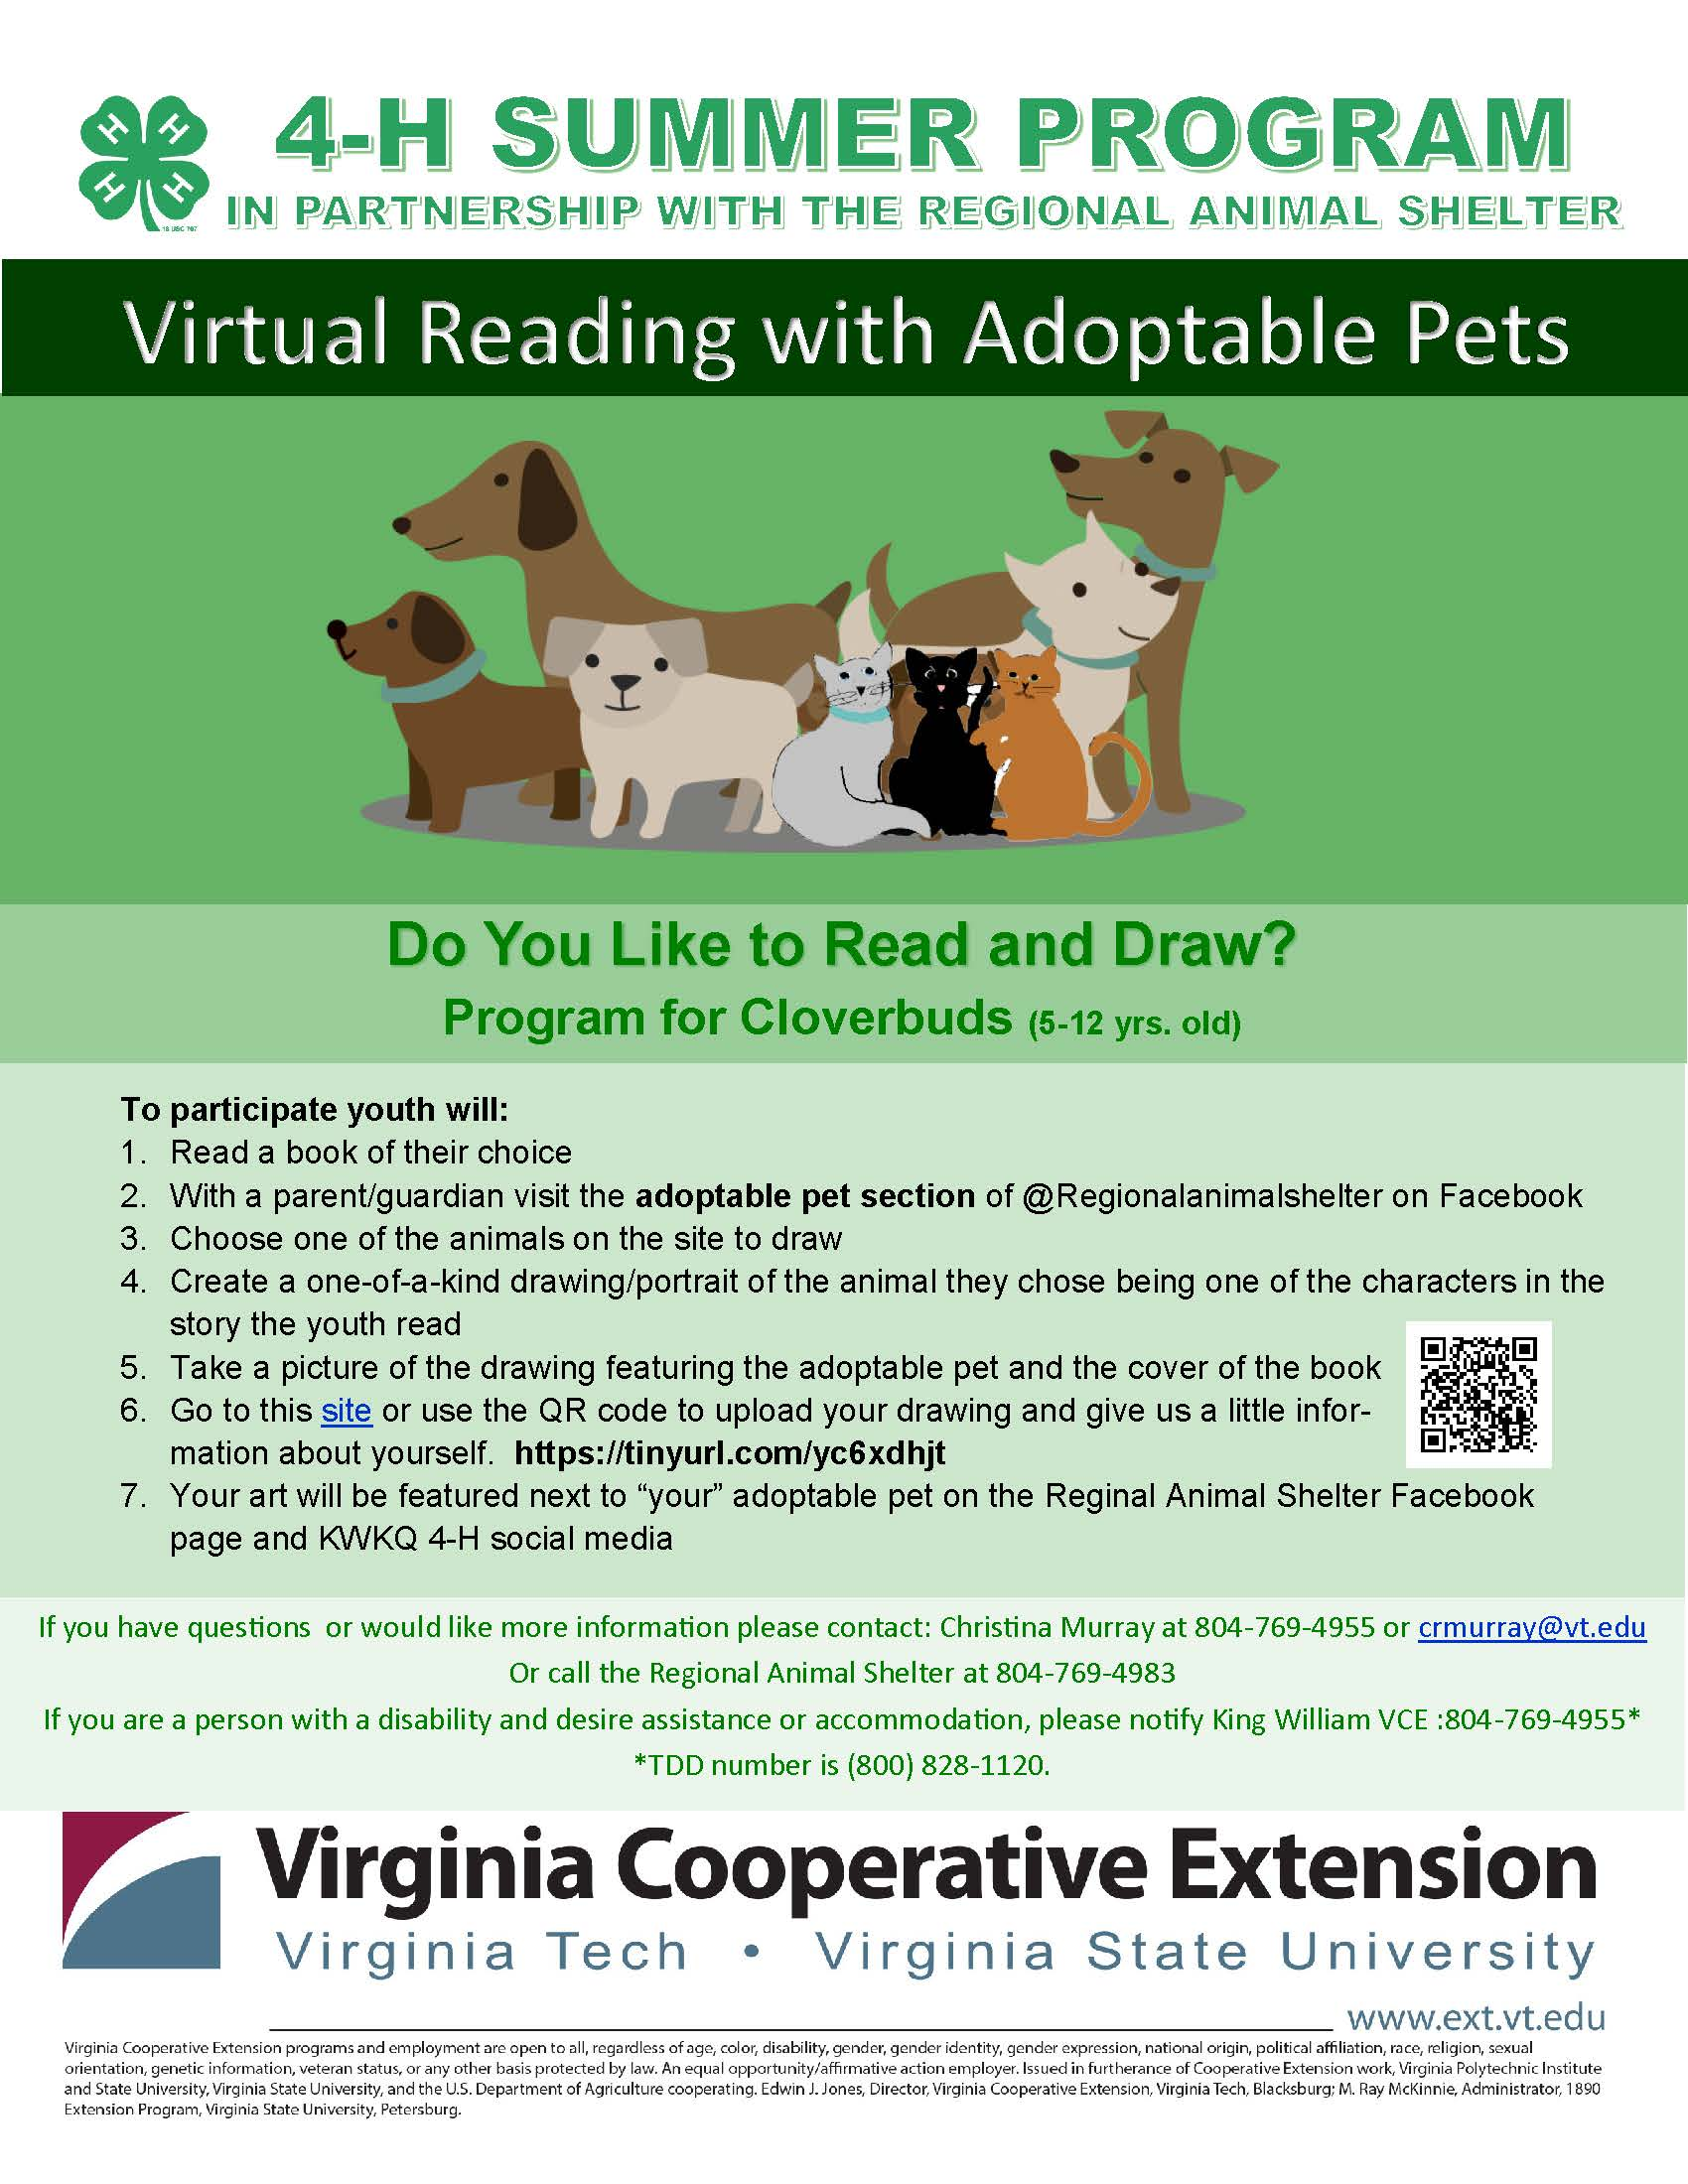 Virtual Reading with Pets